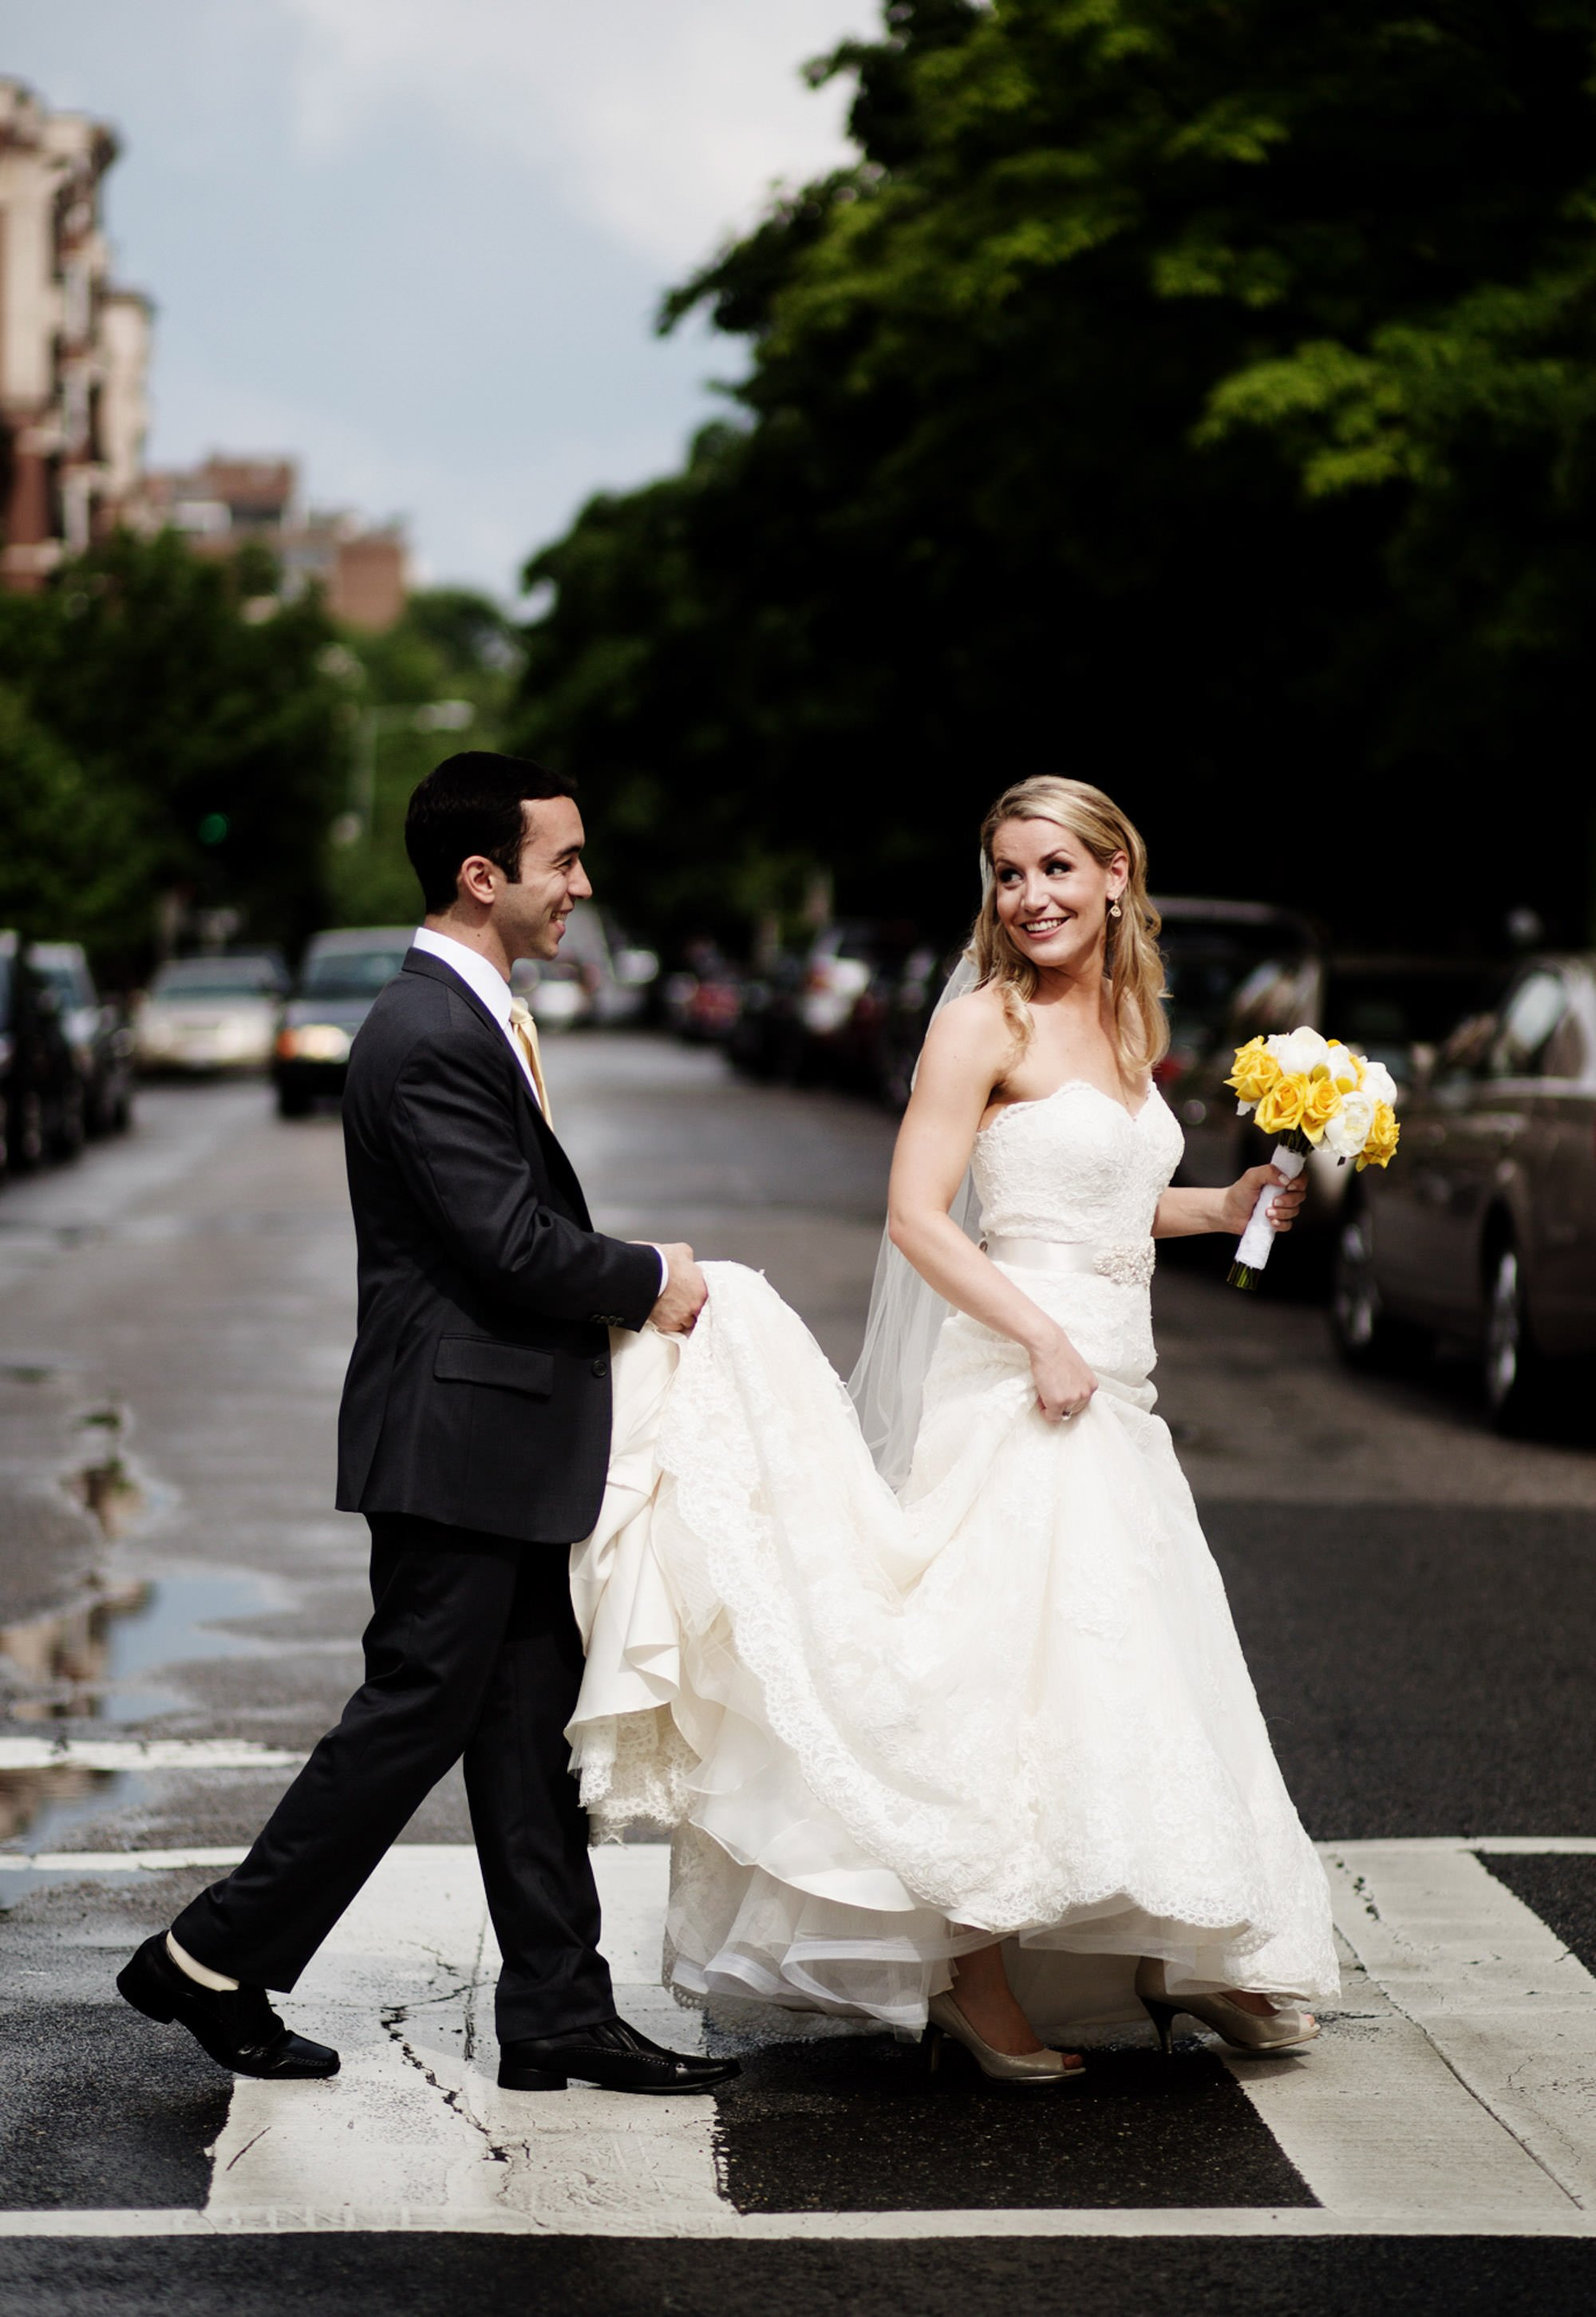 The couple crosses the street in Washington, DC before their Park Hyatt Washington DC Wedding.